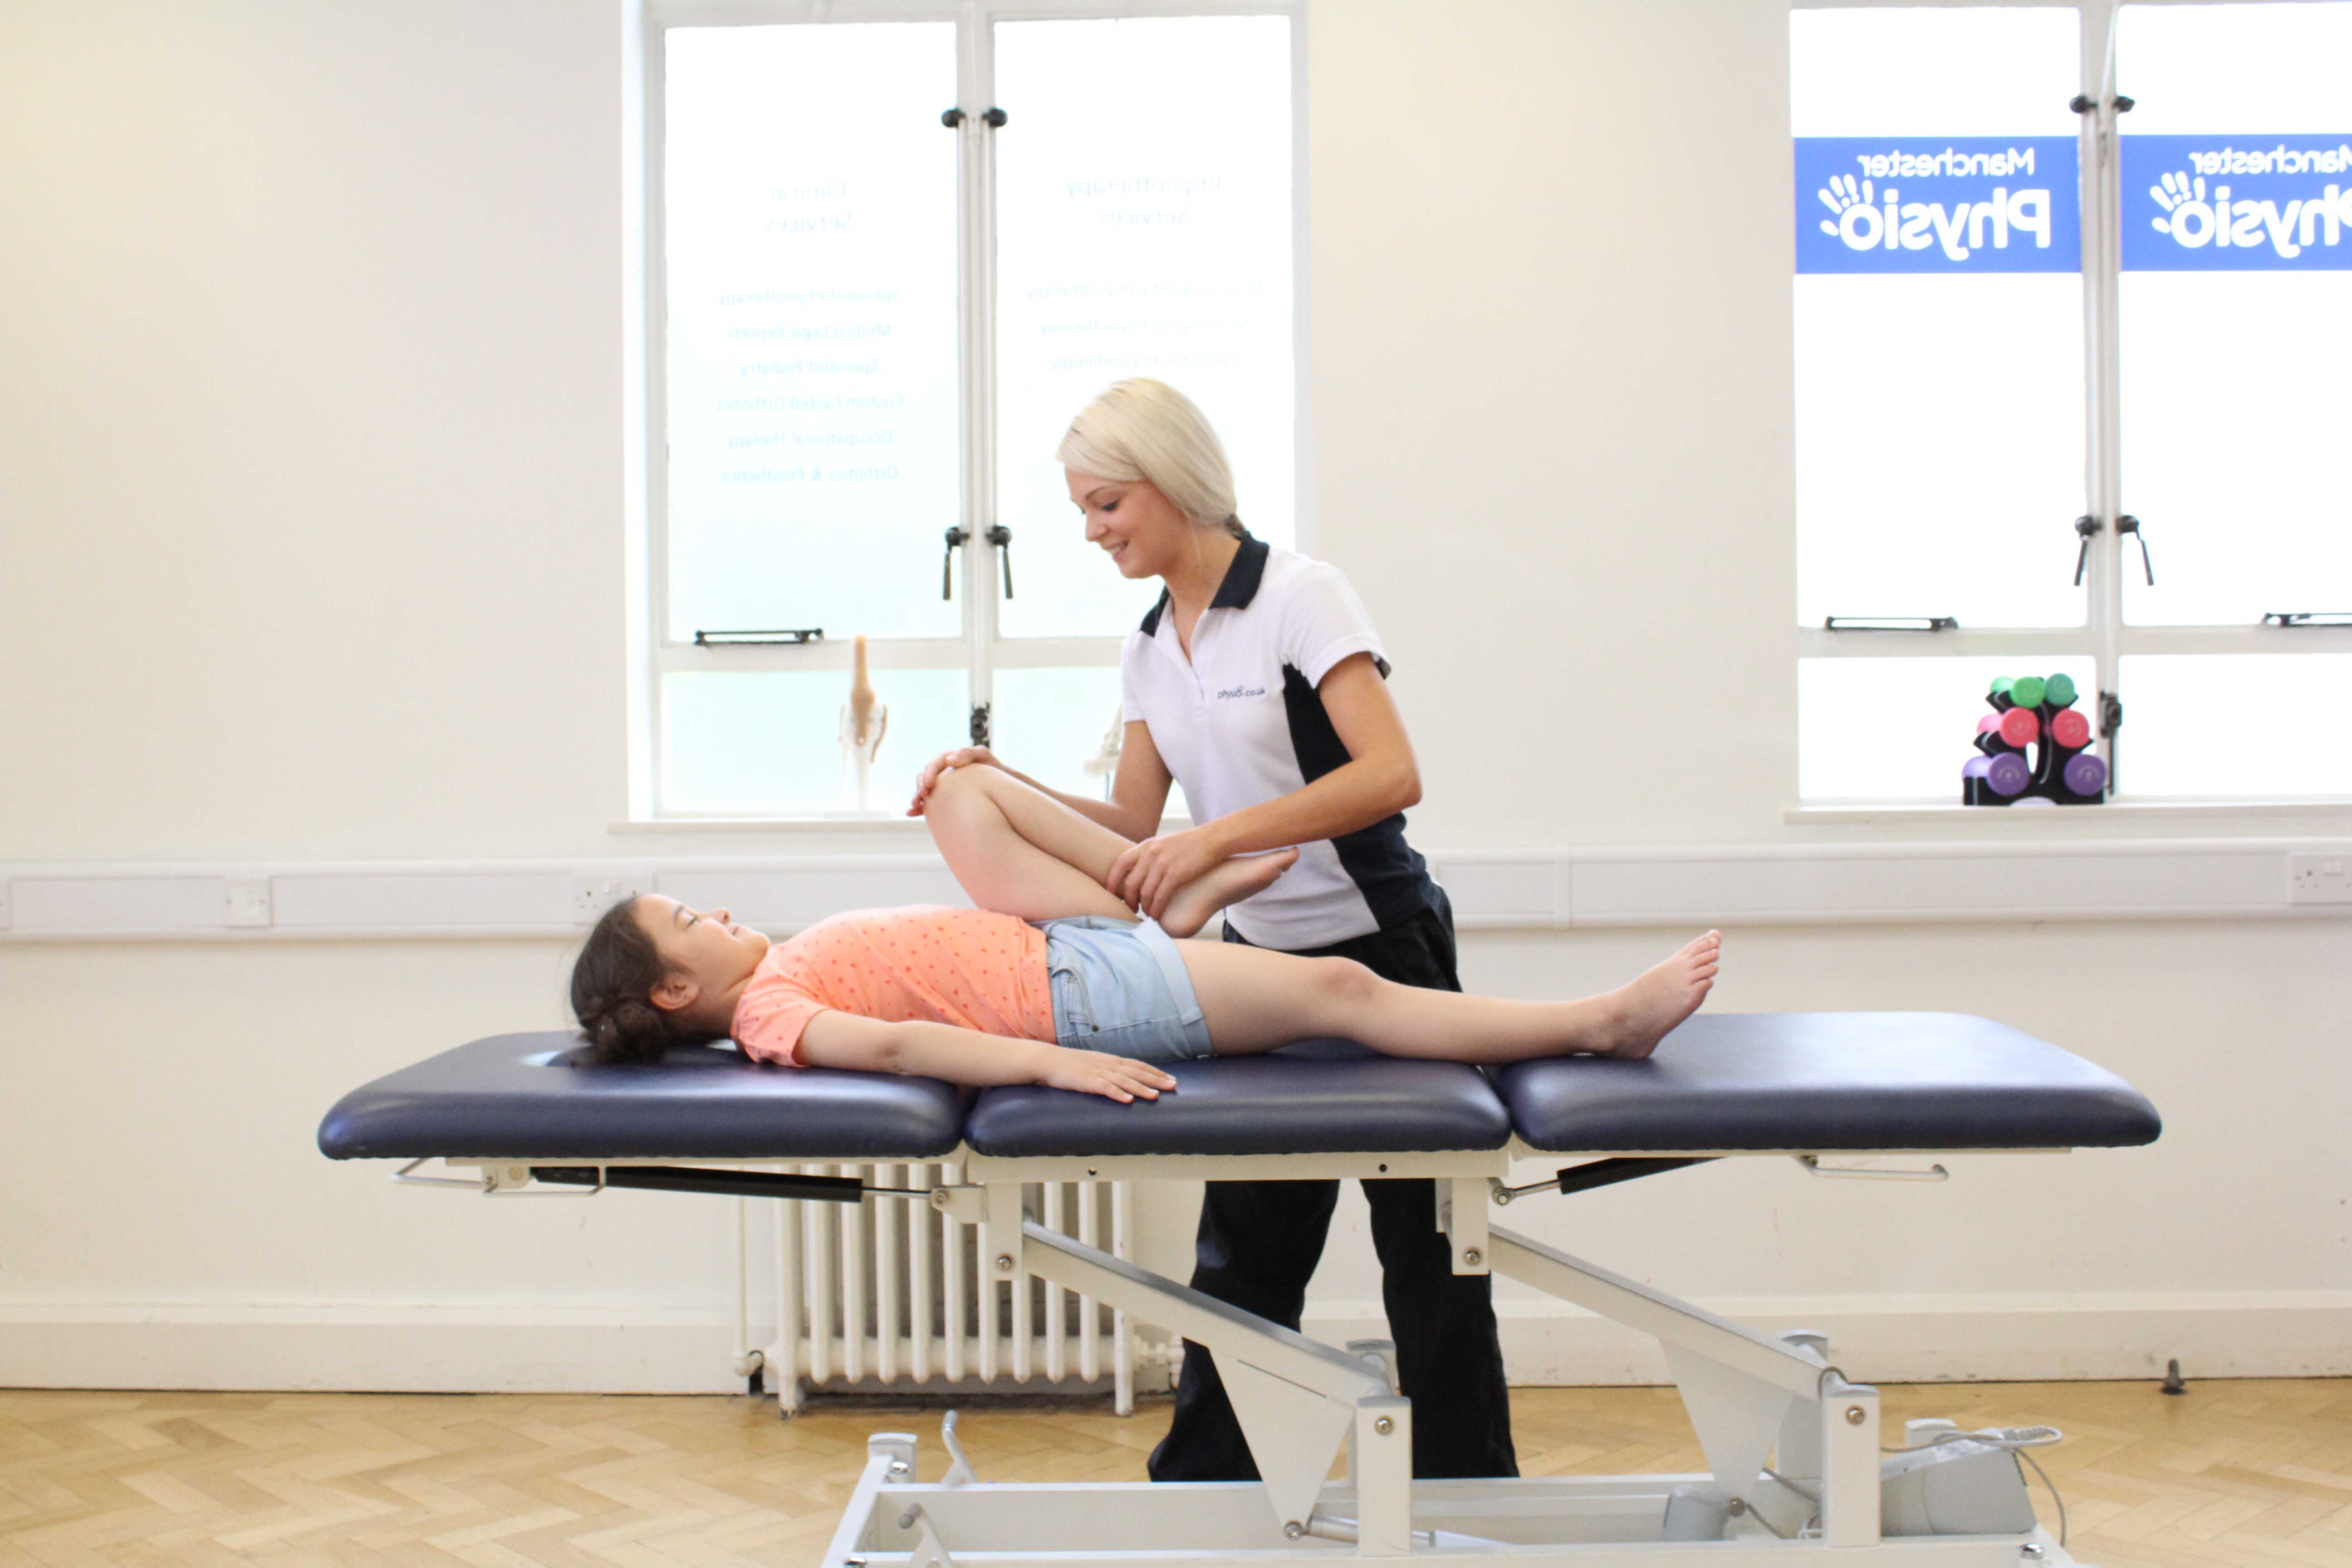 Mobilisations and stretches of the hip and knee to improve flexibility